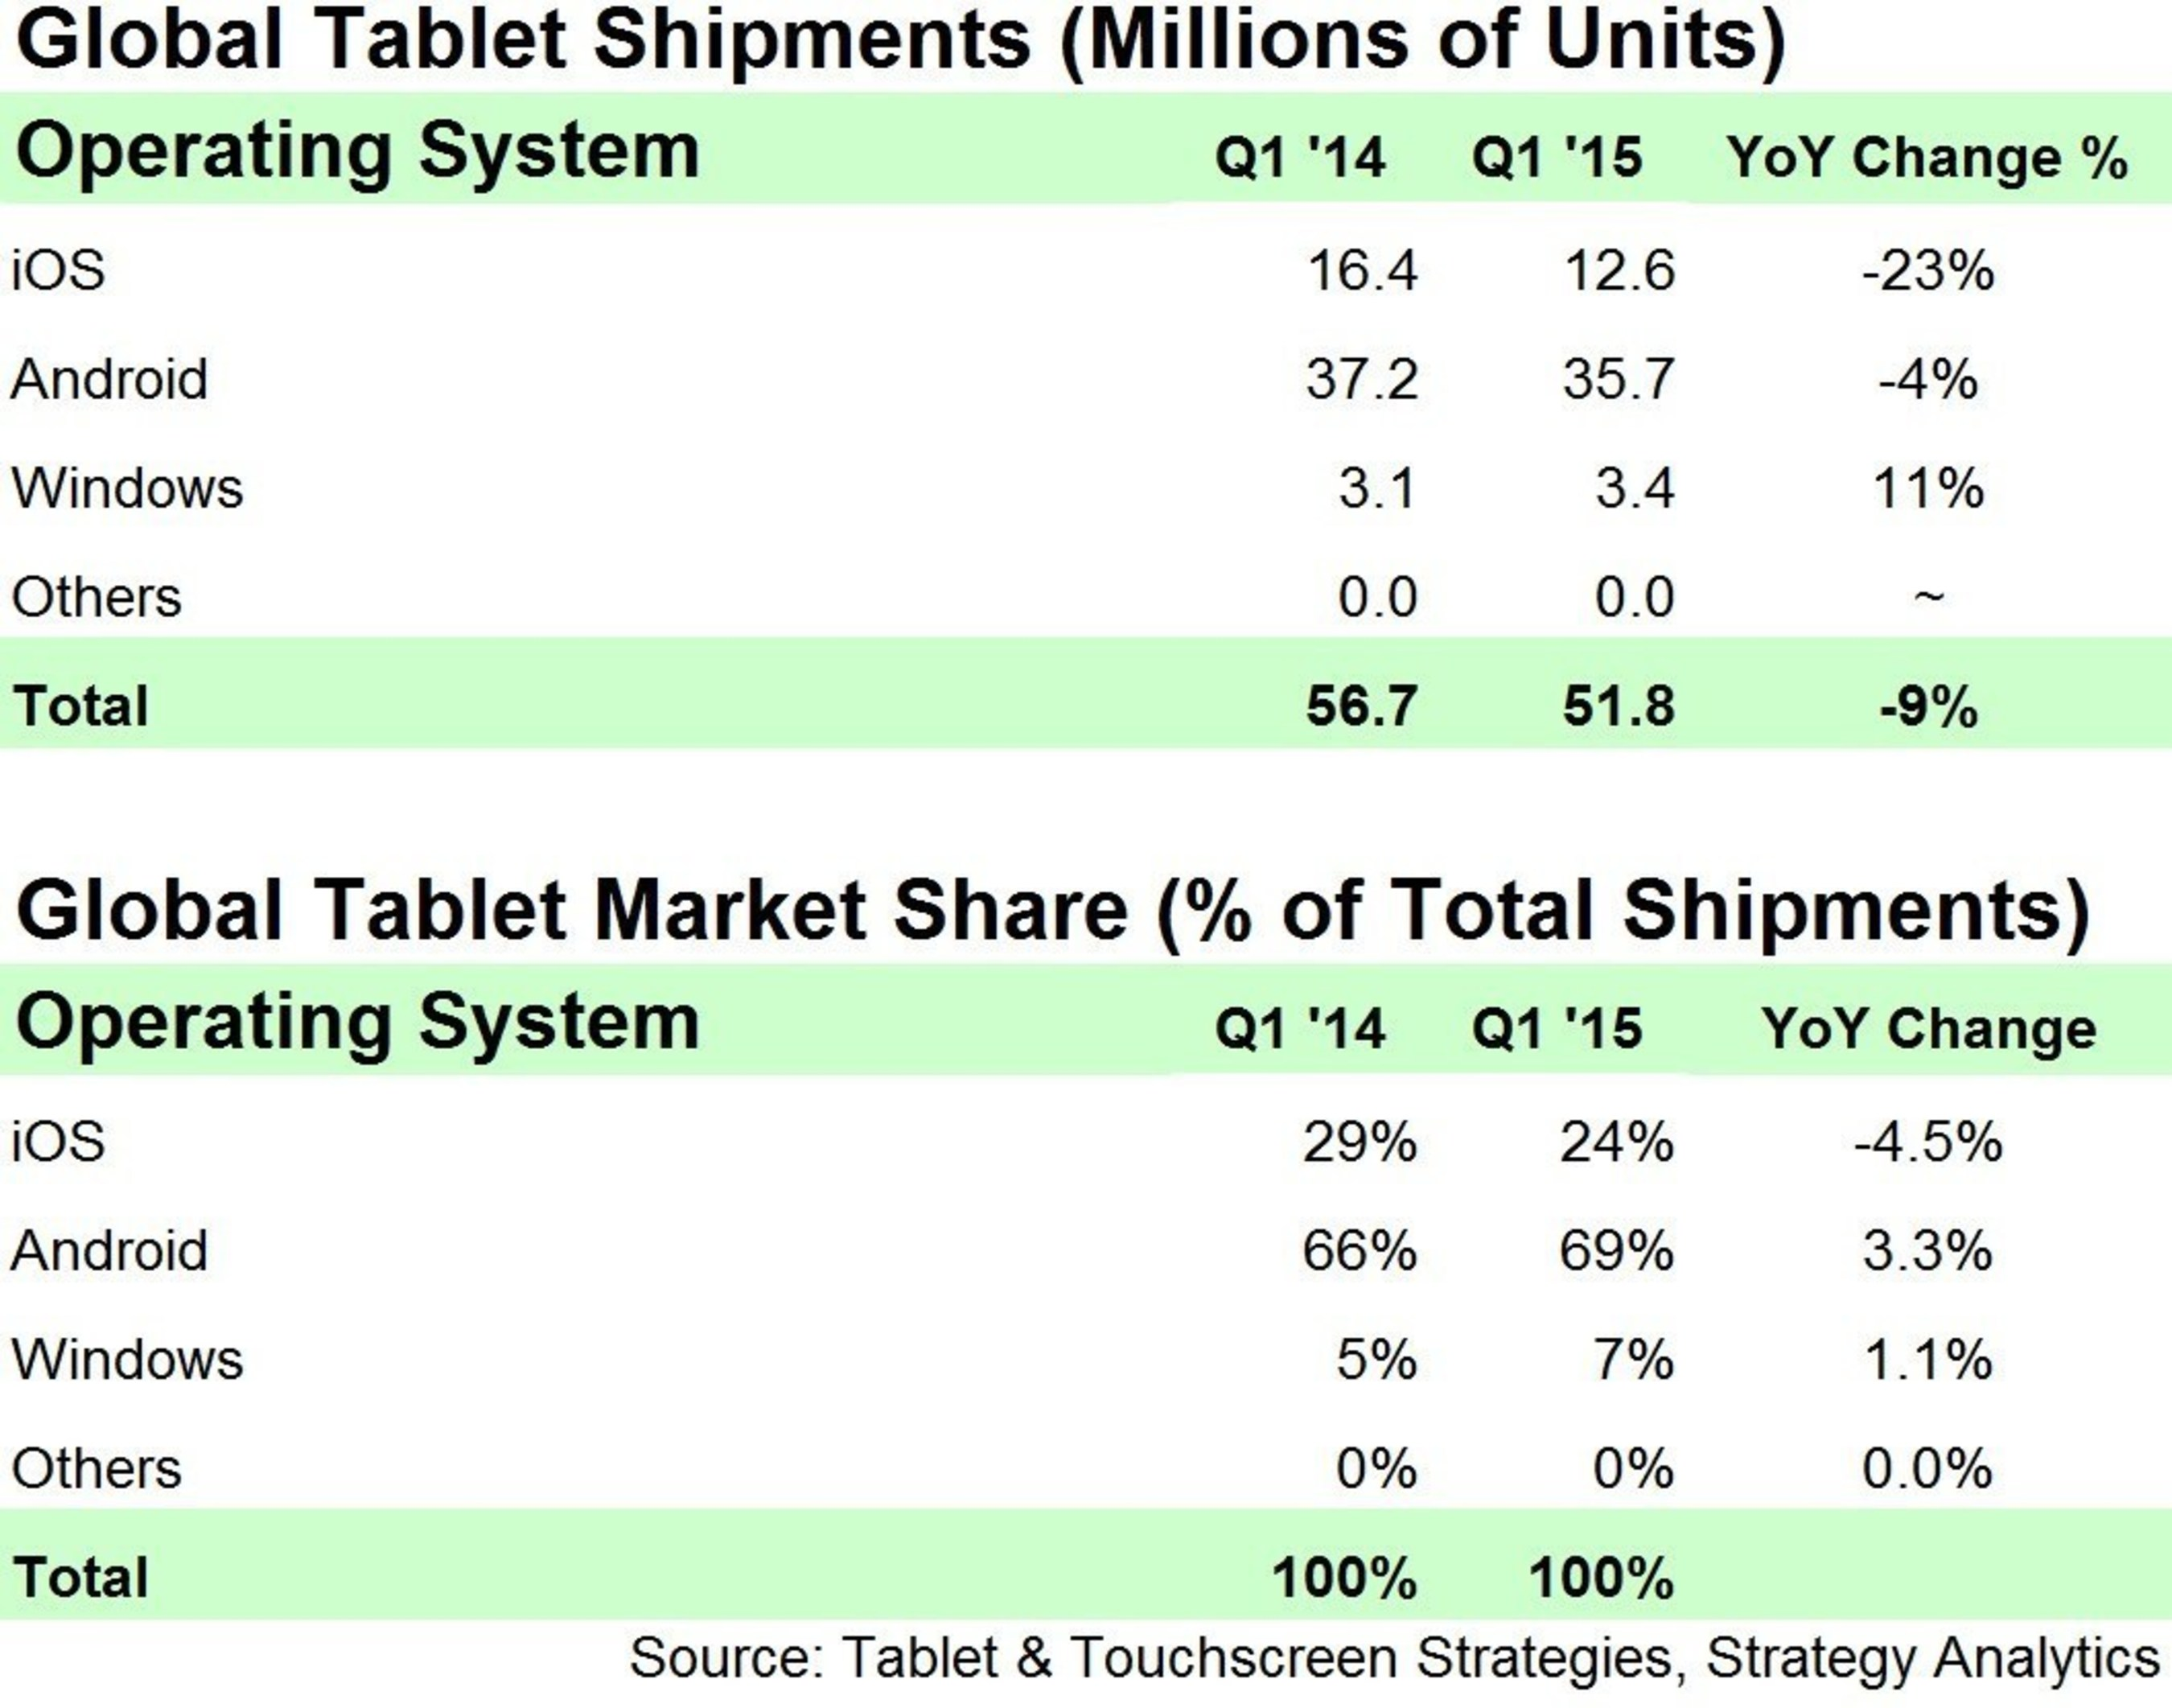 Market Share Building for Windows Tablets, says Strategy Analytics